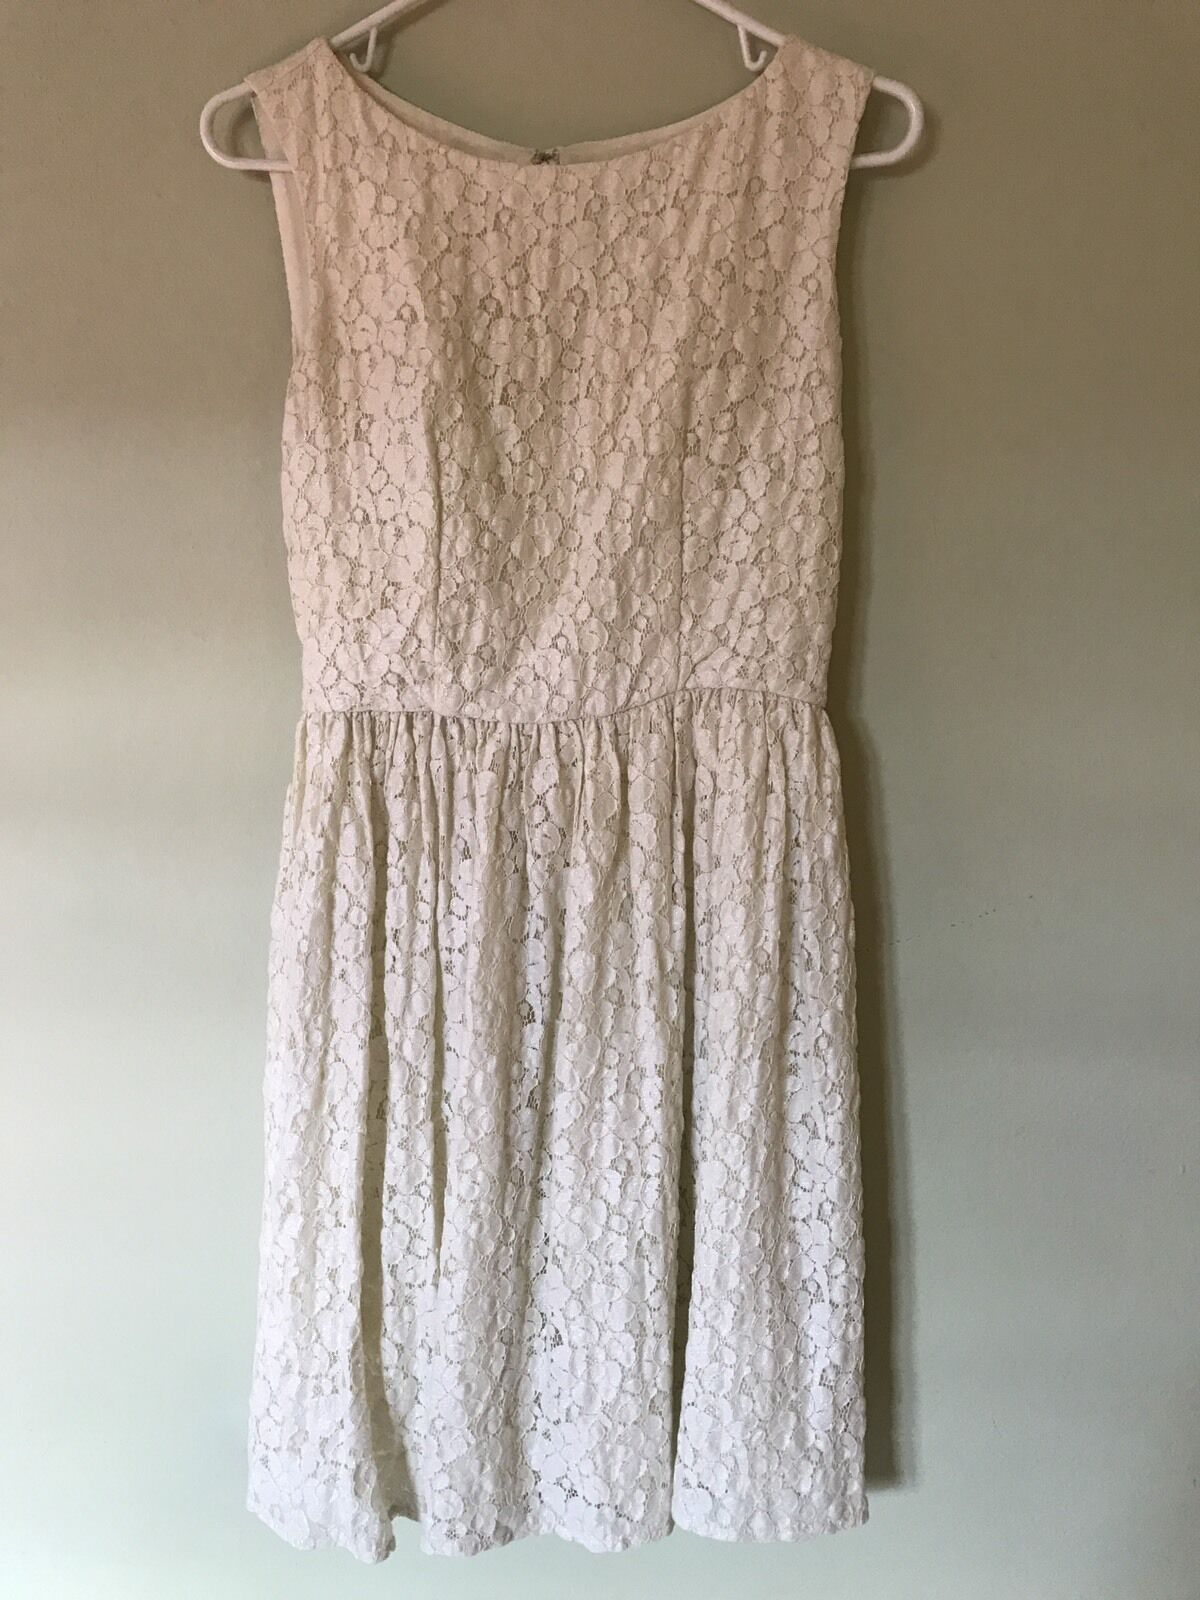 FRENCH CONNECTION FLORAL LACE DRESS Größe 6 IVORY SHIMMER